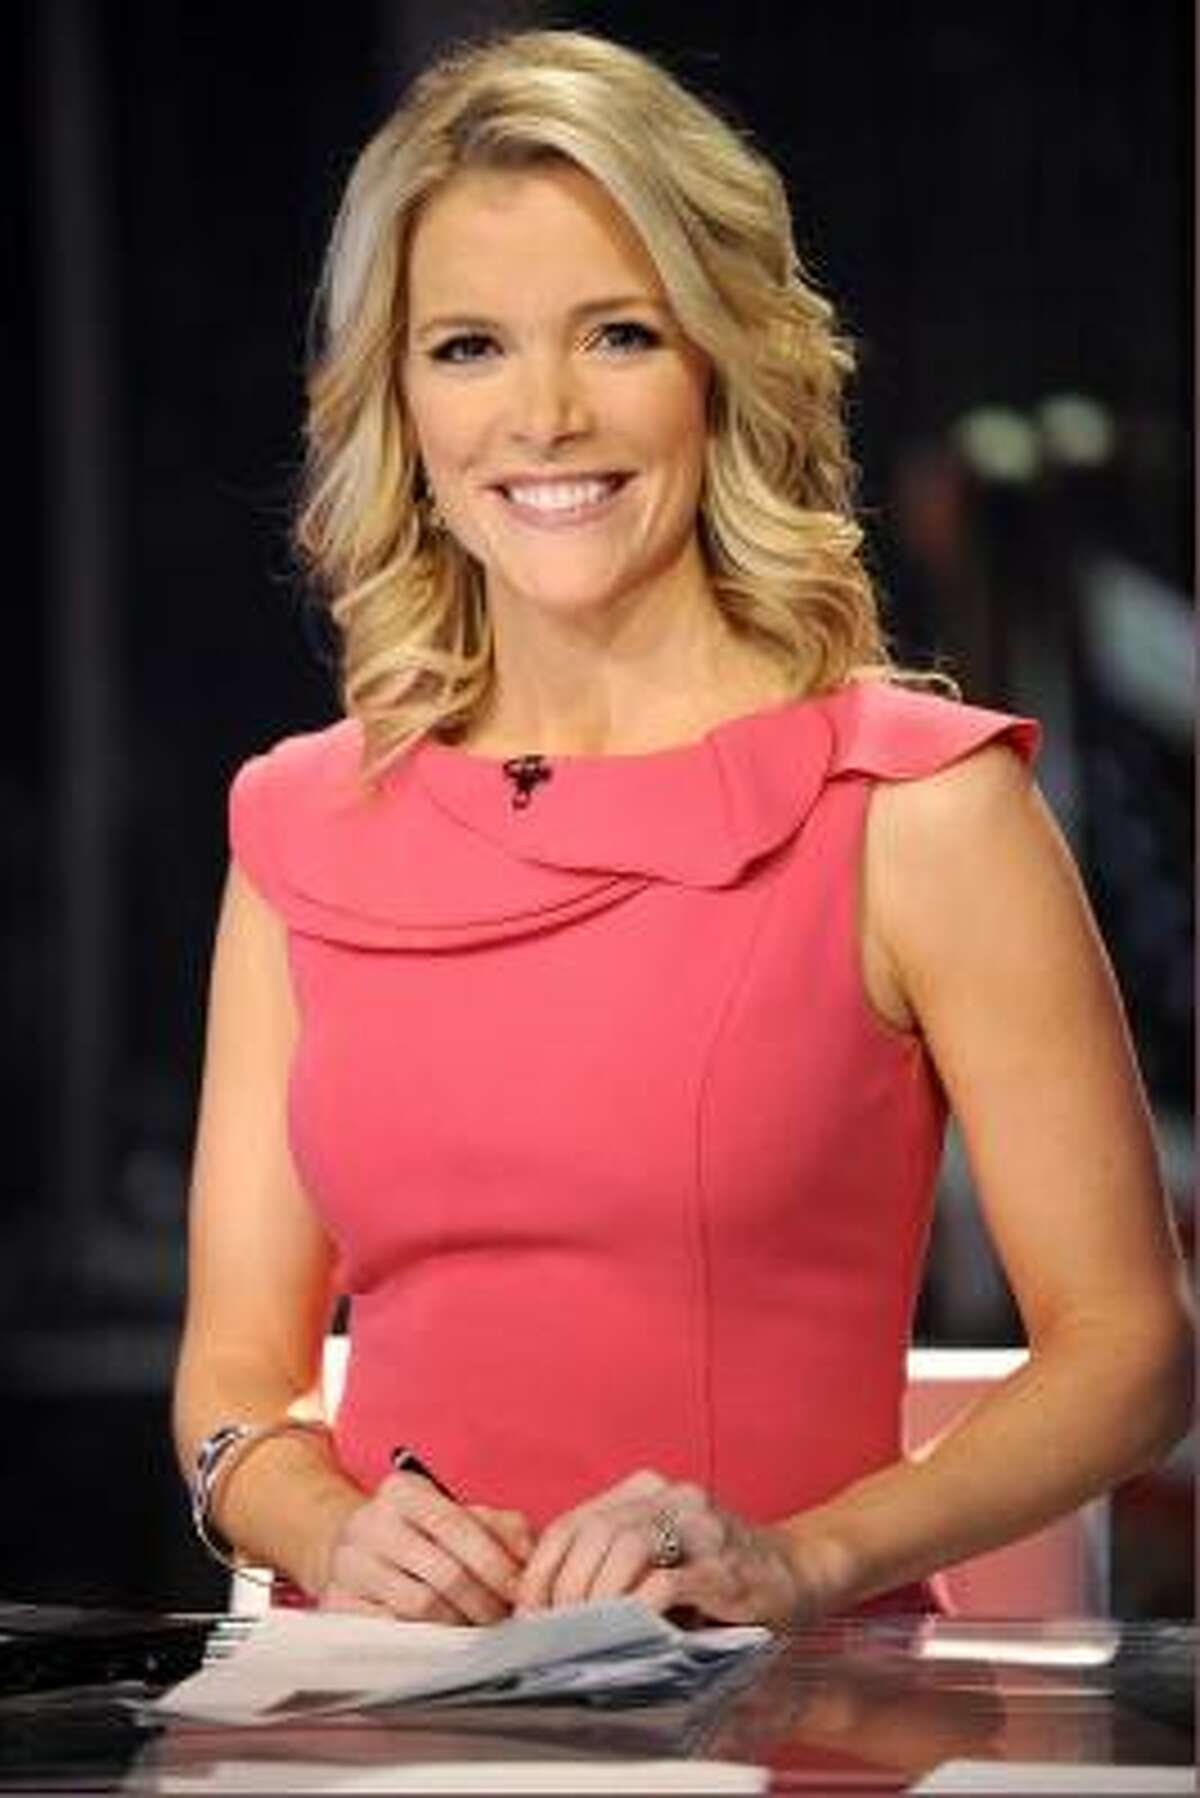 Megyn Kelly thinks people would do well to emulate layers.